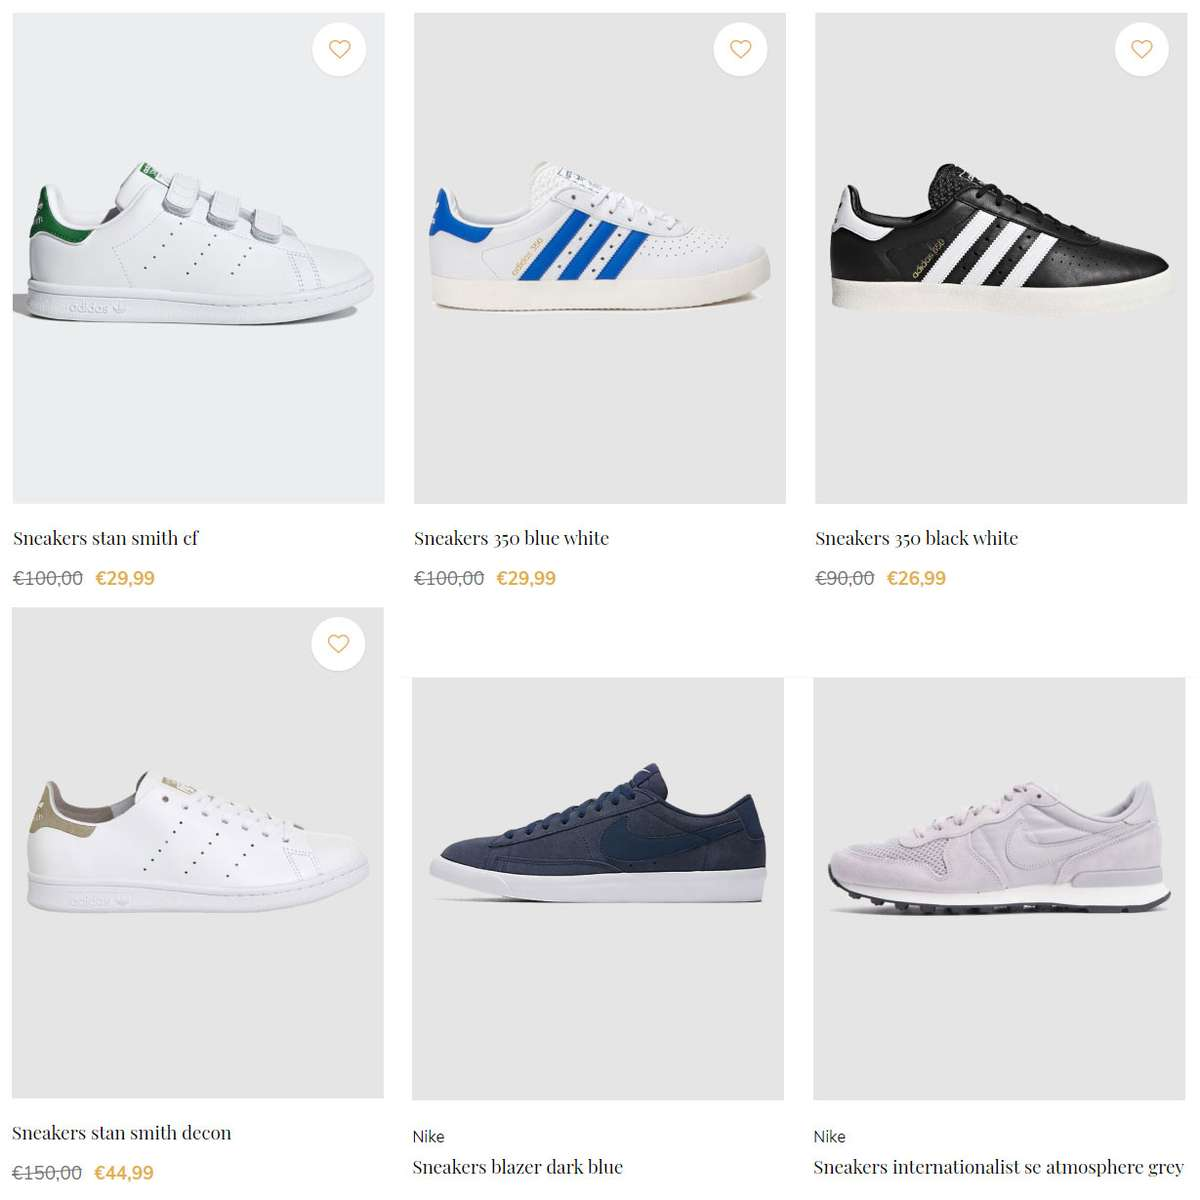 Get the shoes for 150£ at kickgame.co.uk | Adidas fashion